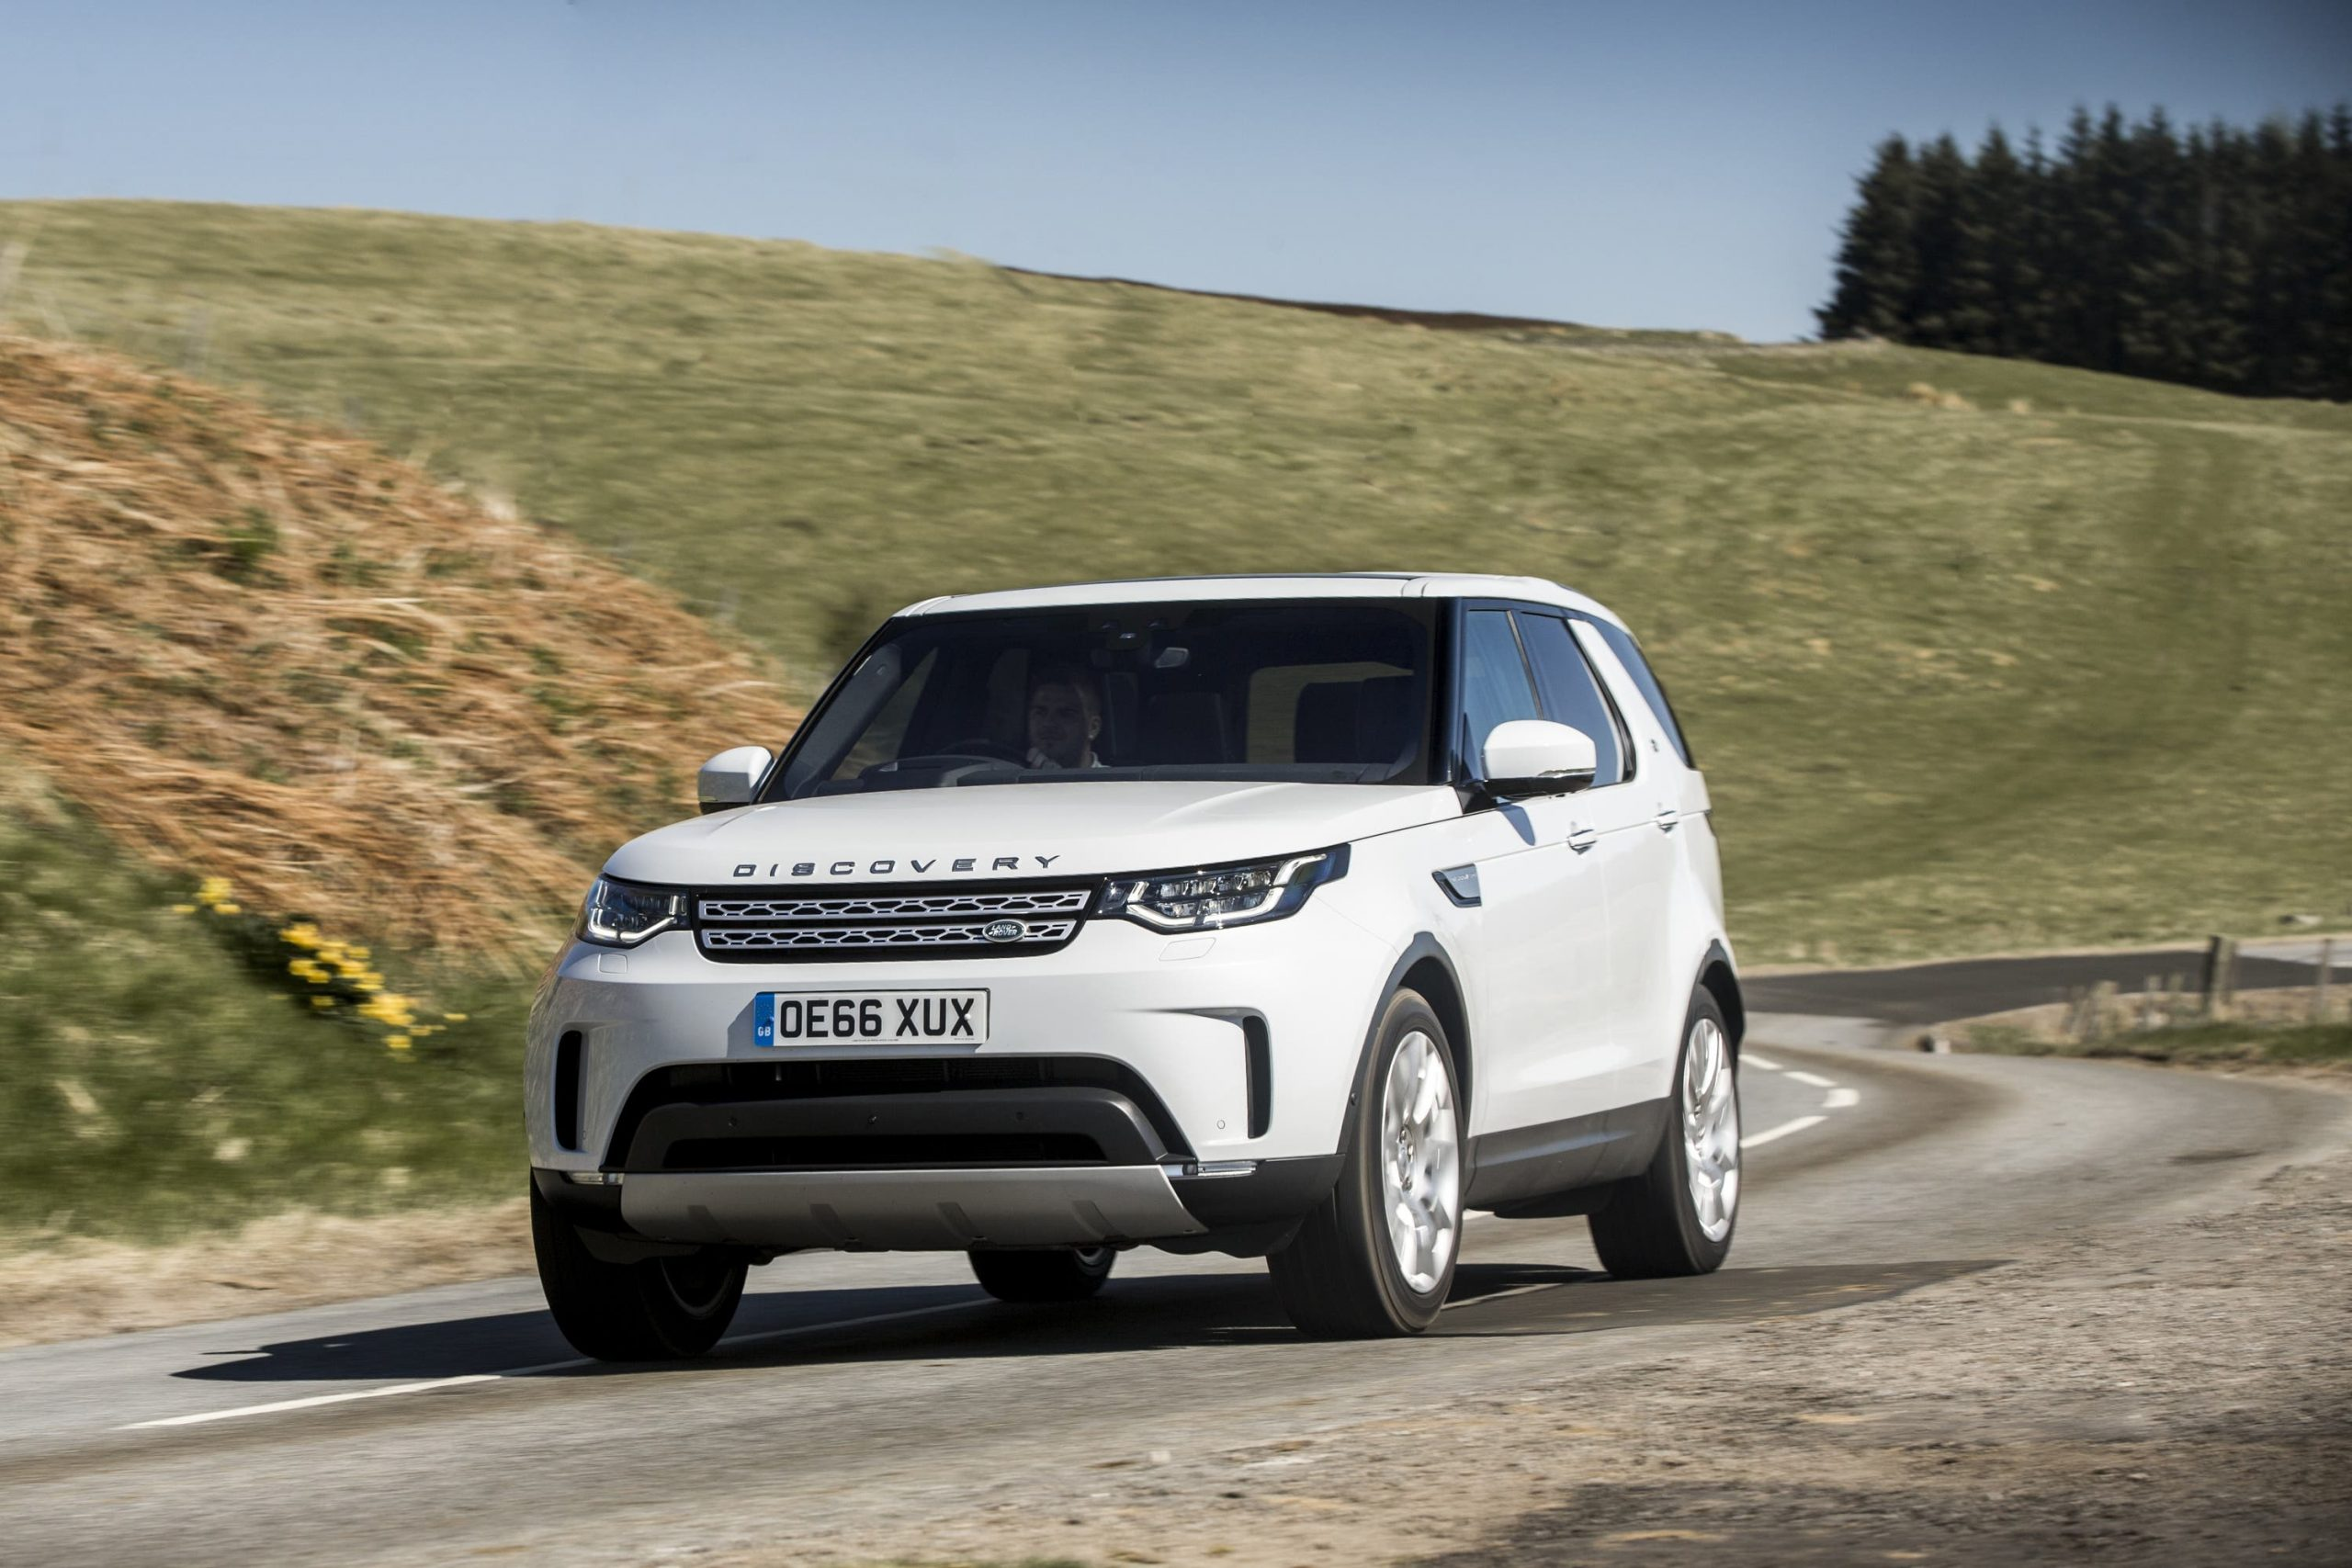 This is the history of the – LAND ROVER DISCOVERY